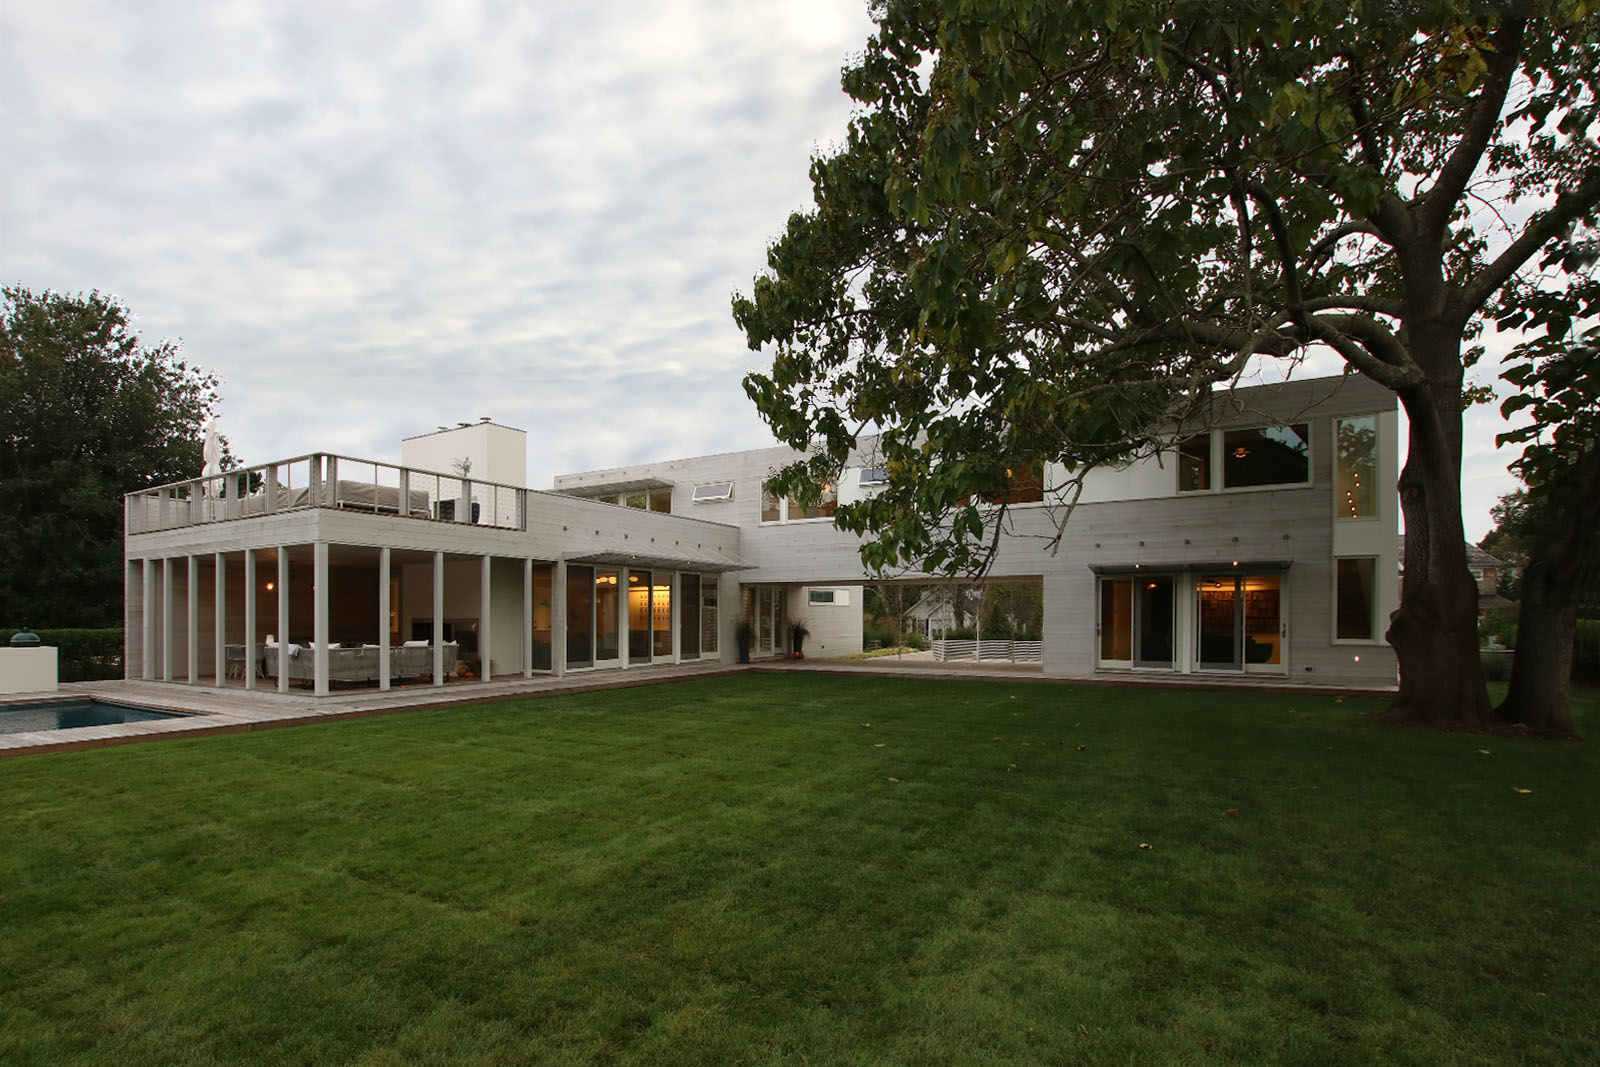 10-re4a-resolution-4-architecture-modern-modular-prefab-bridgehampton house-exterior-dusk-2.jpg